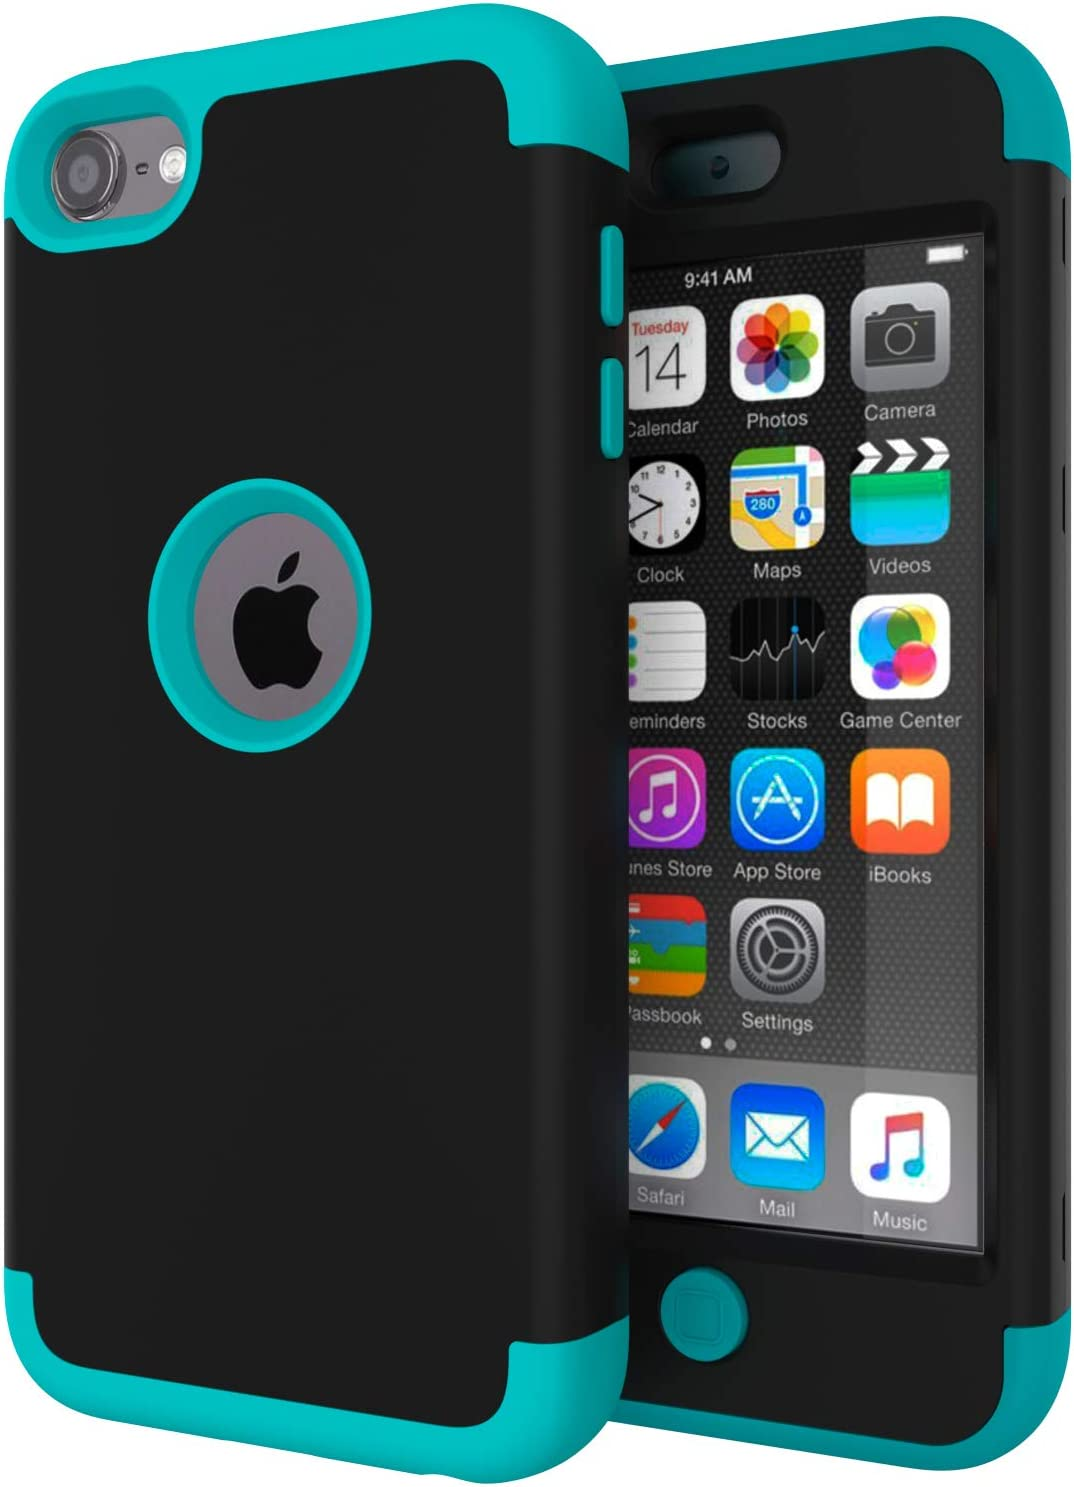 iPod Touch 7 Case,iPod Touch 6 Case,SLMY(TM)High Impact Heavy Duty Shockproof Full-Body Protective Case with Dual Layer Hard PC+ Soft Silicone For Apple iPod Touch 7th/6th/5th Generation Black/Blue